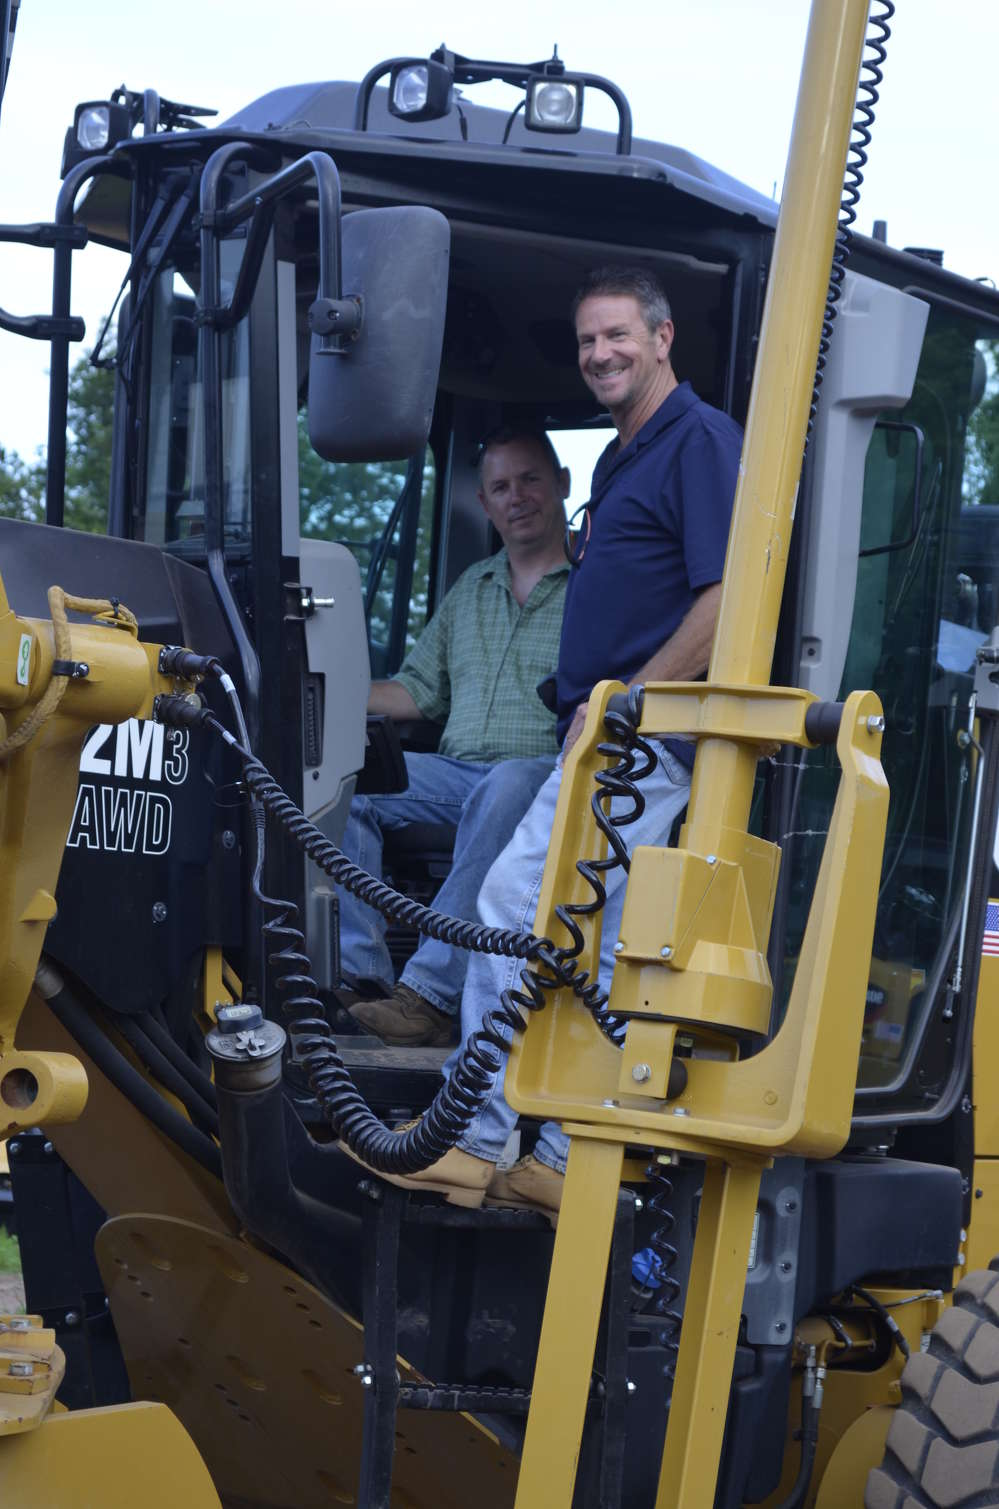 Bob Lodge (in cab) of Lodge Earthworks, Windsor, Conn., and Richard Roulstor of Roulstor Services, Windsor Locks, Conn., were very impressed with the controls of the Cat 12M motorgrader.